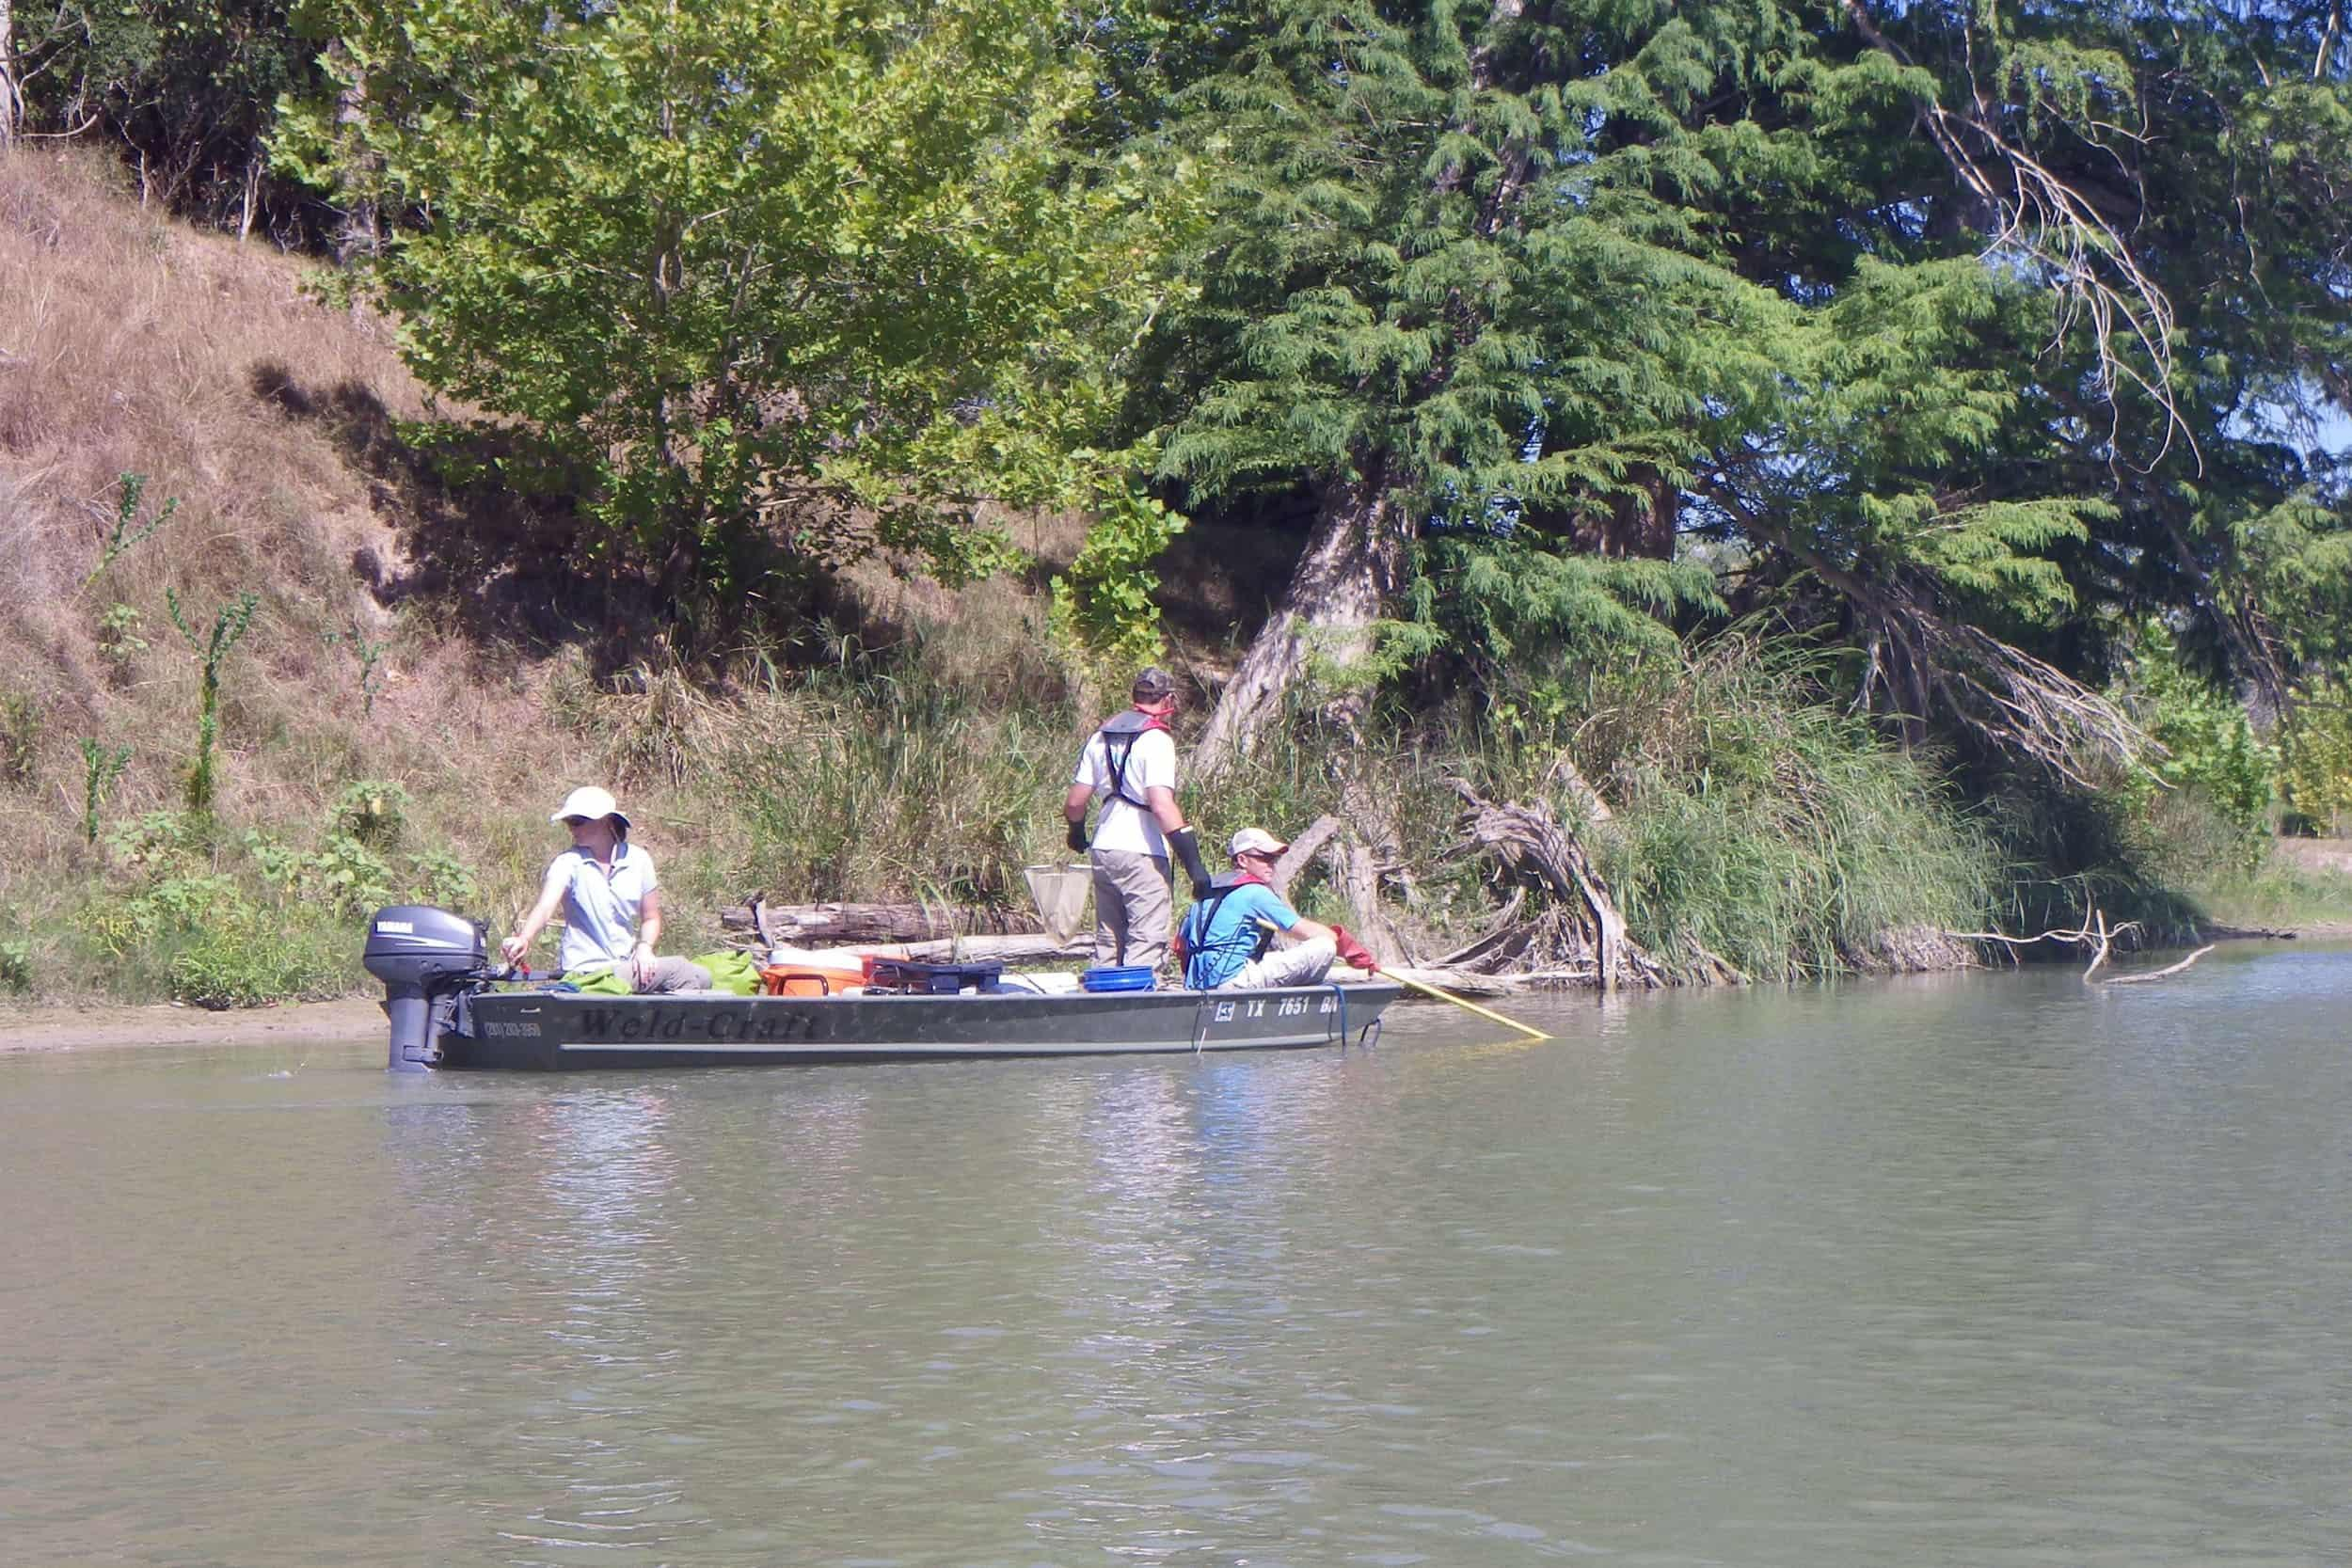 Jenny Oakley, environmental scientist, navigates the Guadalupe River while Michael Lane, research assistant, and Stephen Curtis, aquatic scientist, electroshock